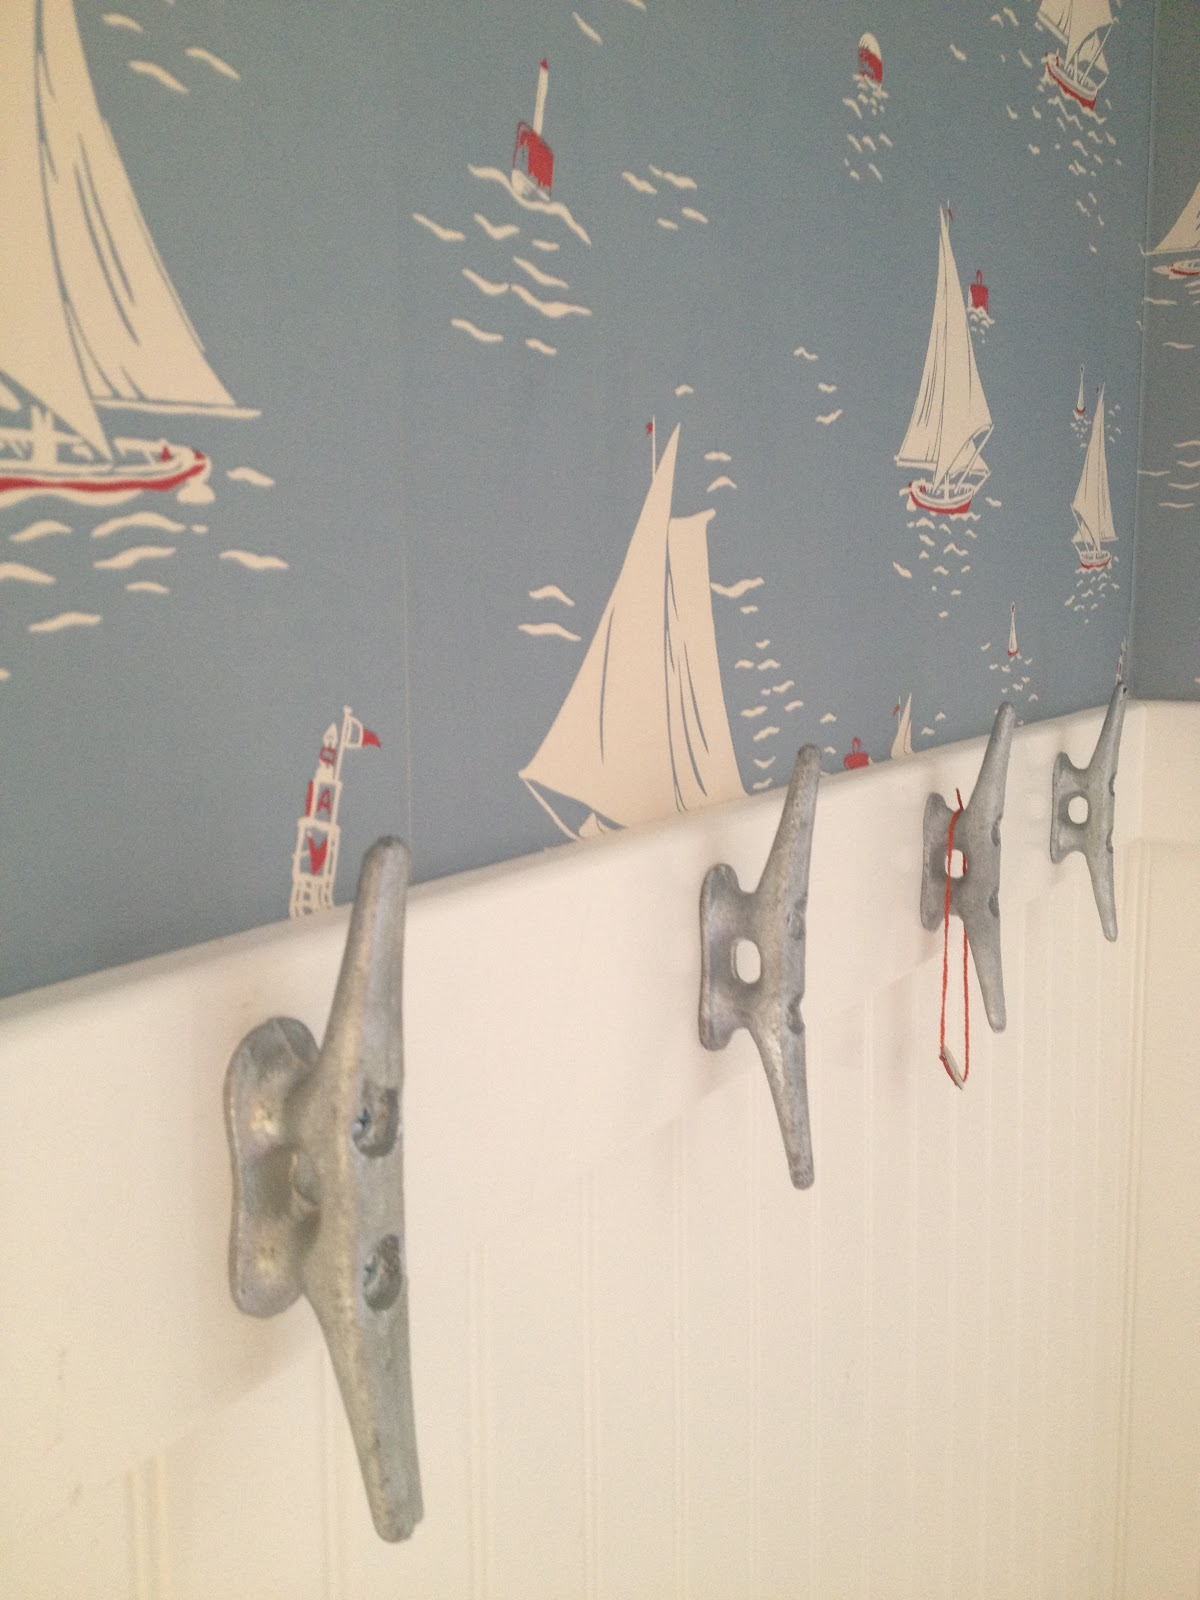 This Old Coconut Grove: cabana bathroom wallpaper & boat cleats